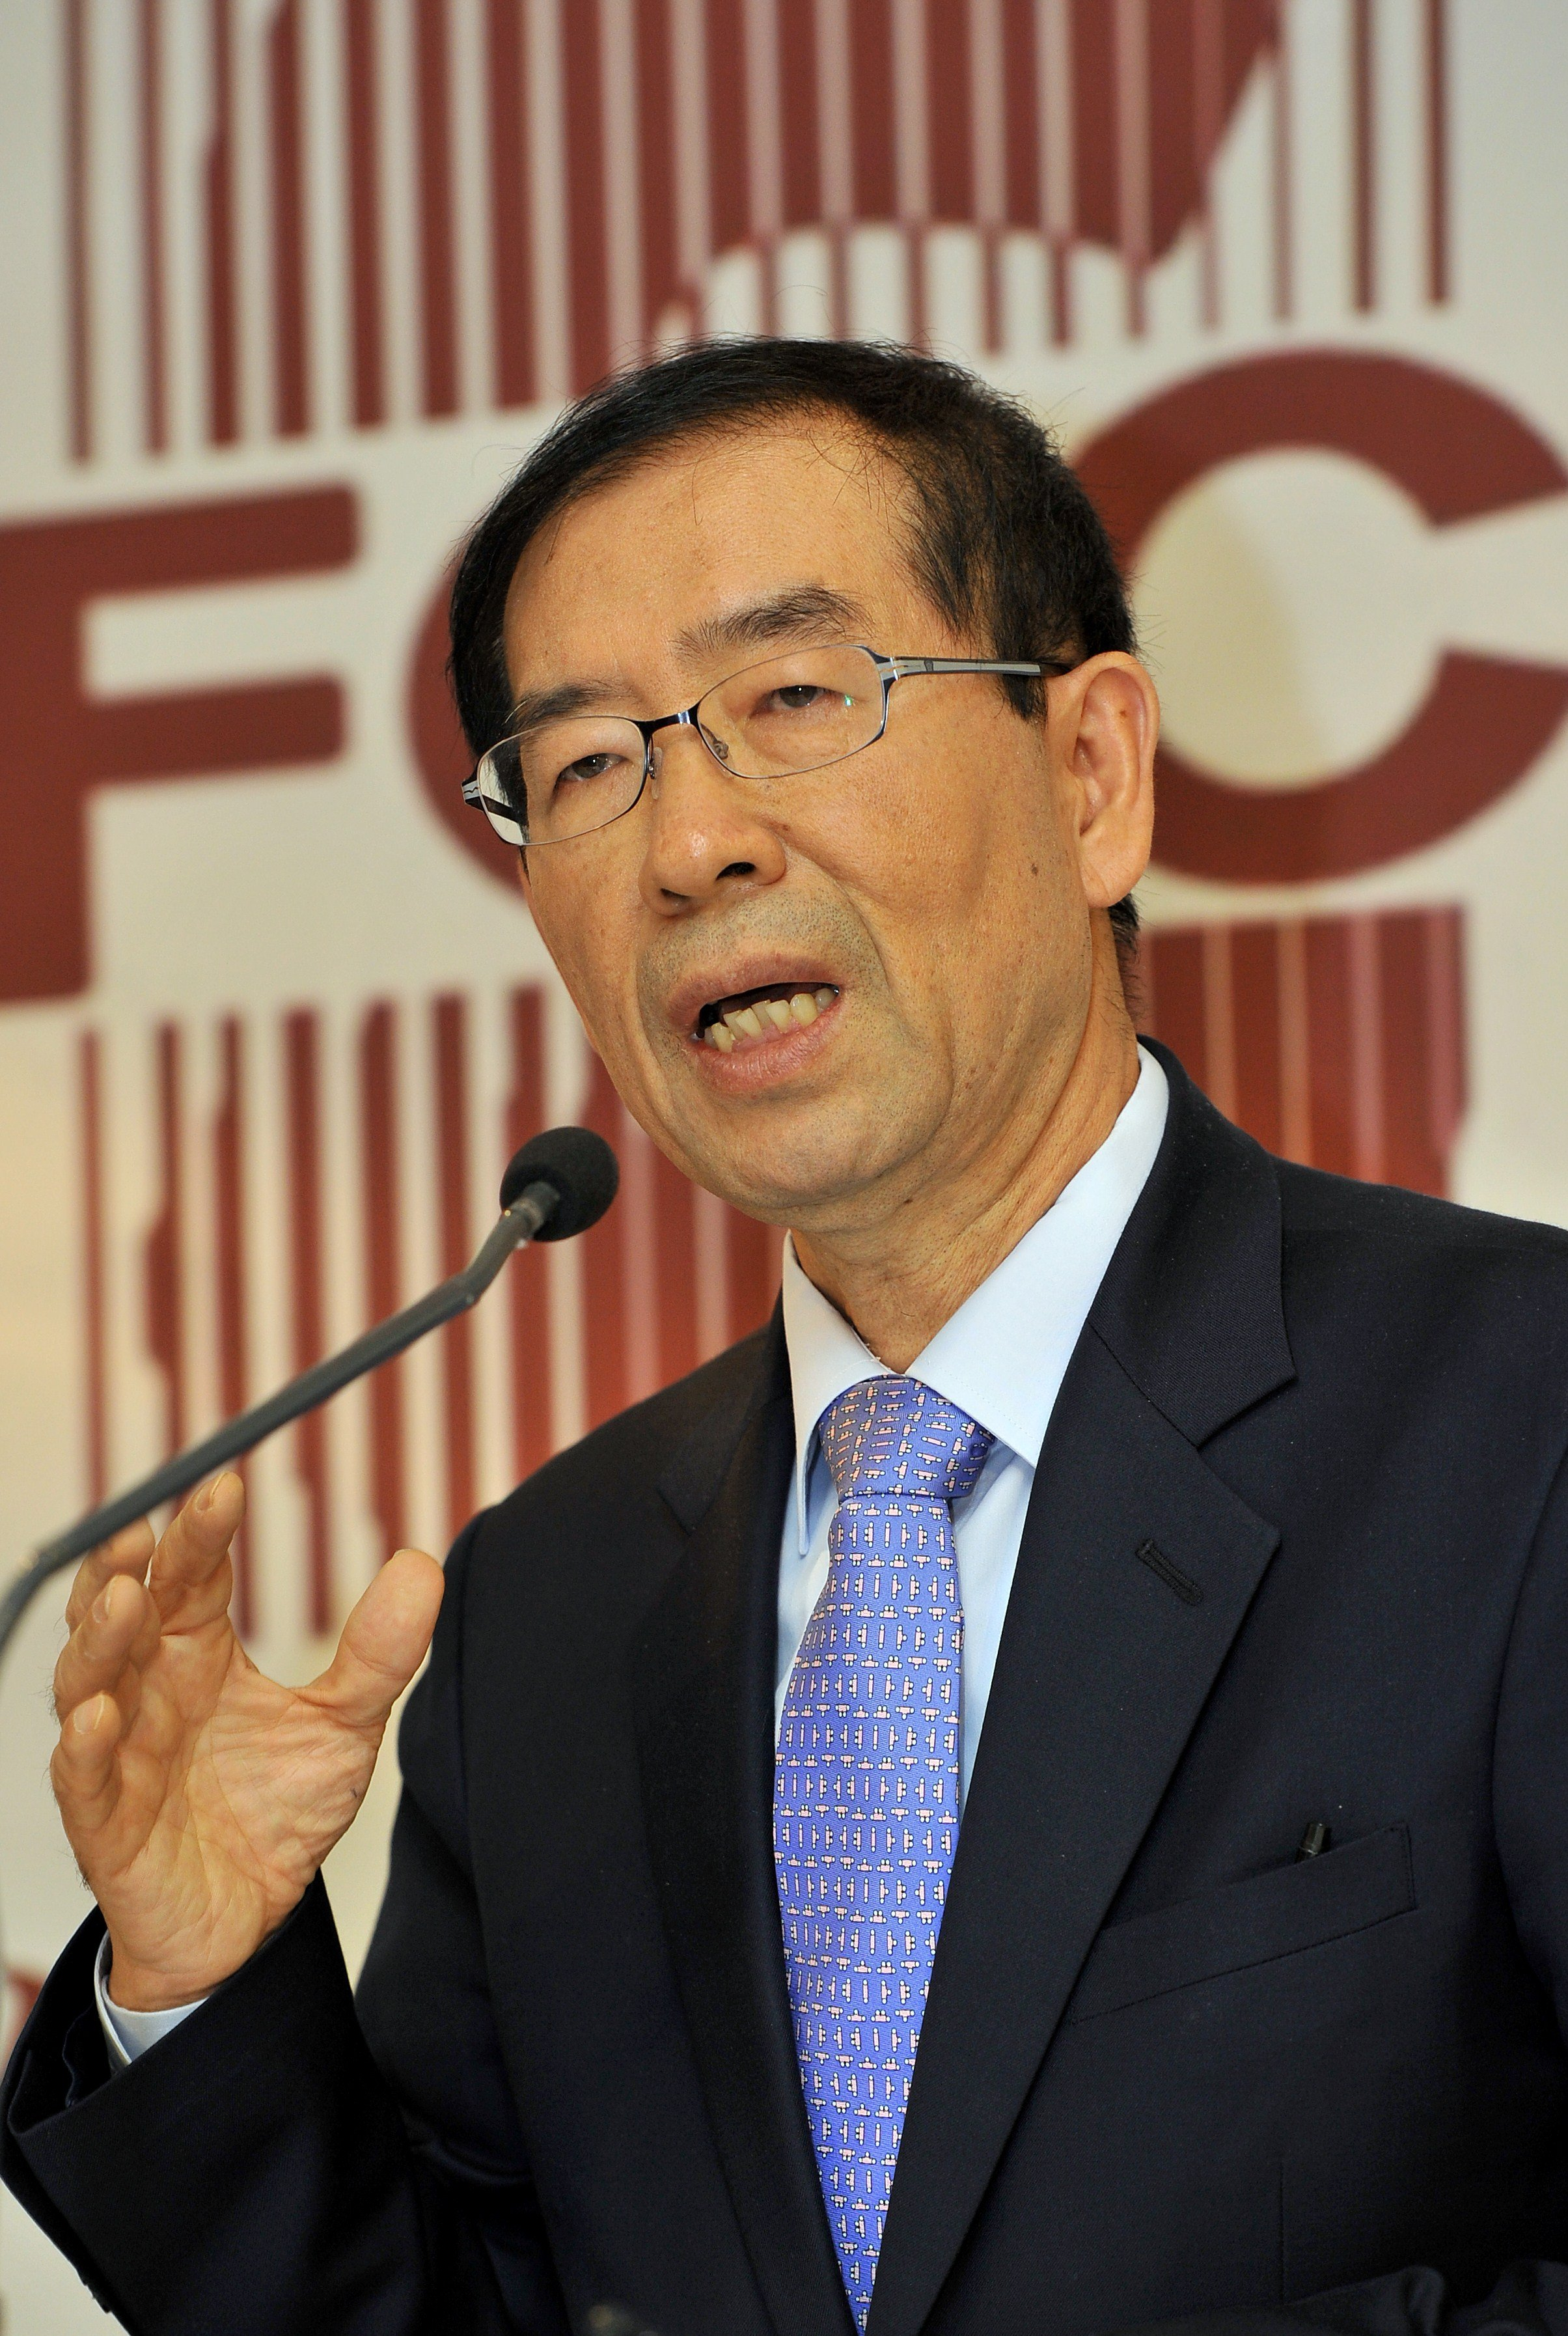 Seoul mayor Park Won-Soon speaks during a press conference for foreign correspondents in Seoul on November 9, 2011. (JUNG YEON-JE/AFP via Getty Images)